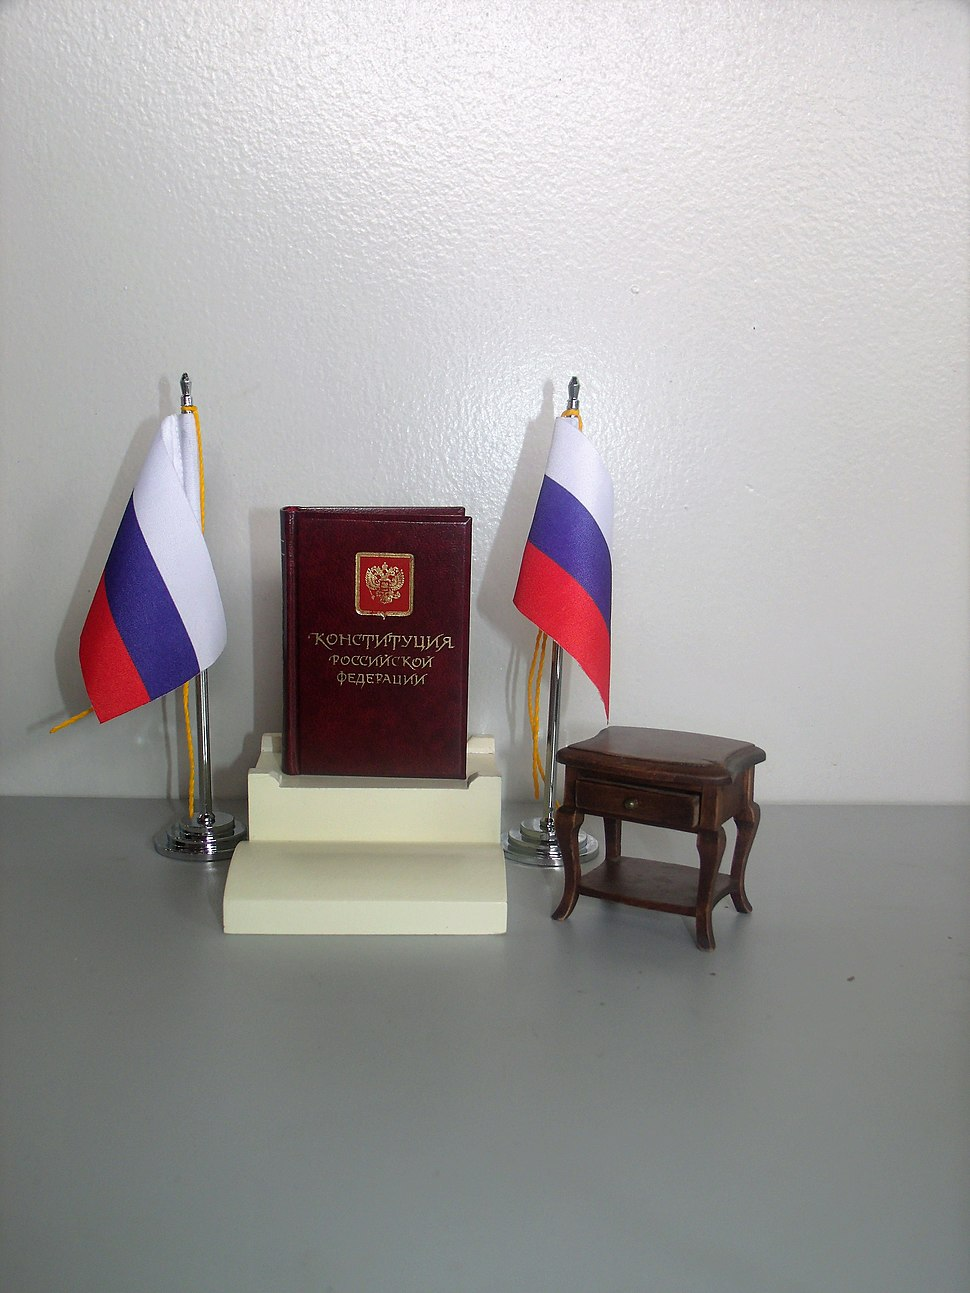 Constitition of Russia (m book) 1